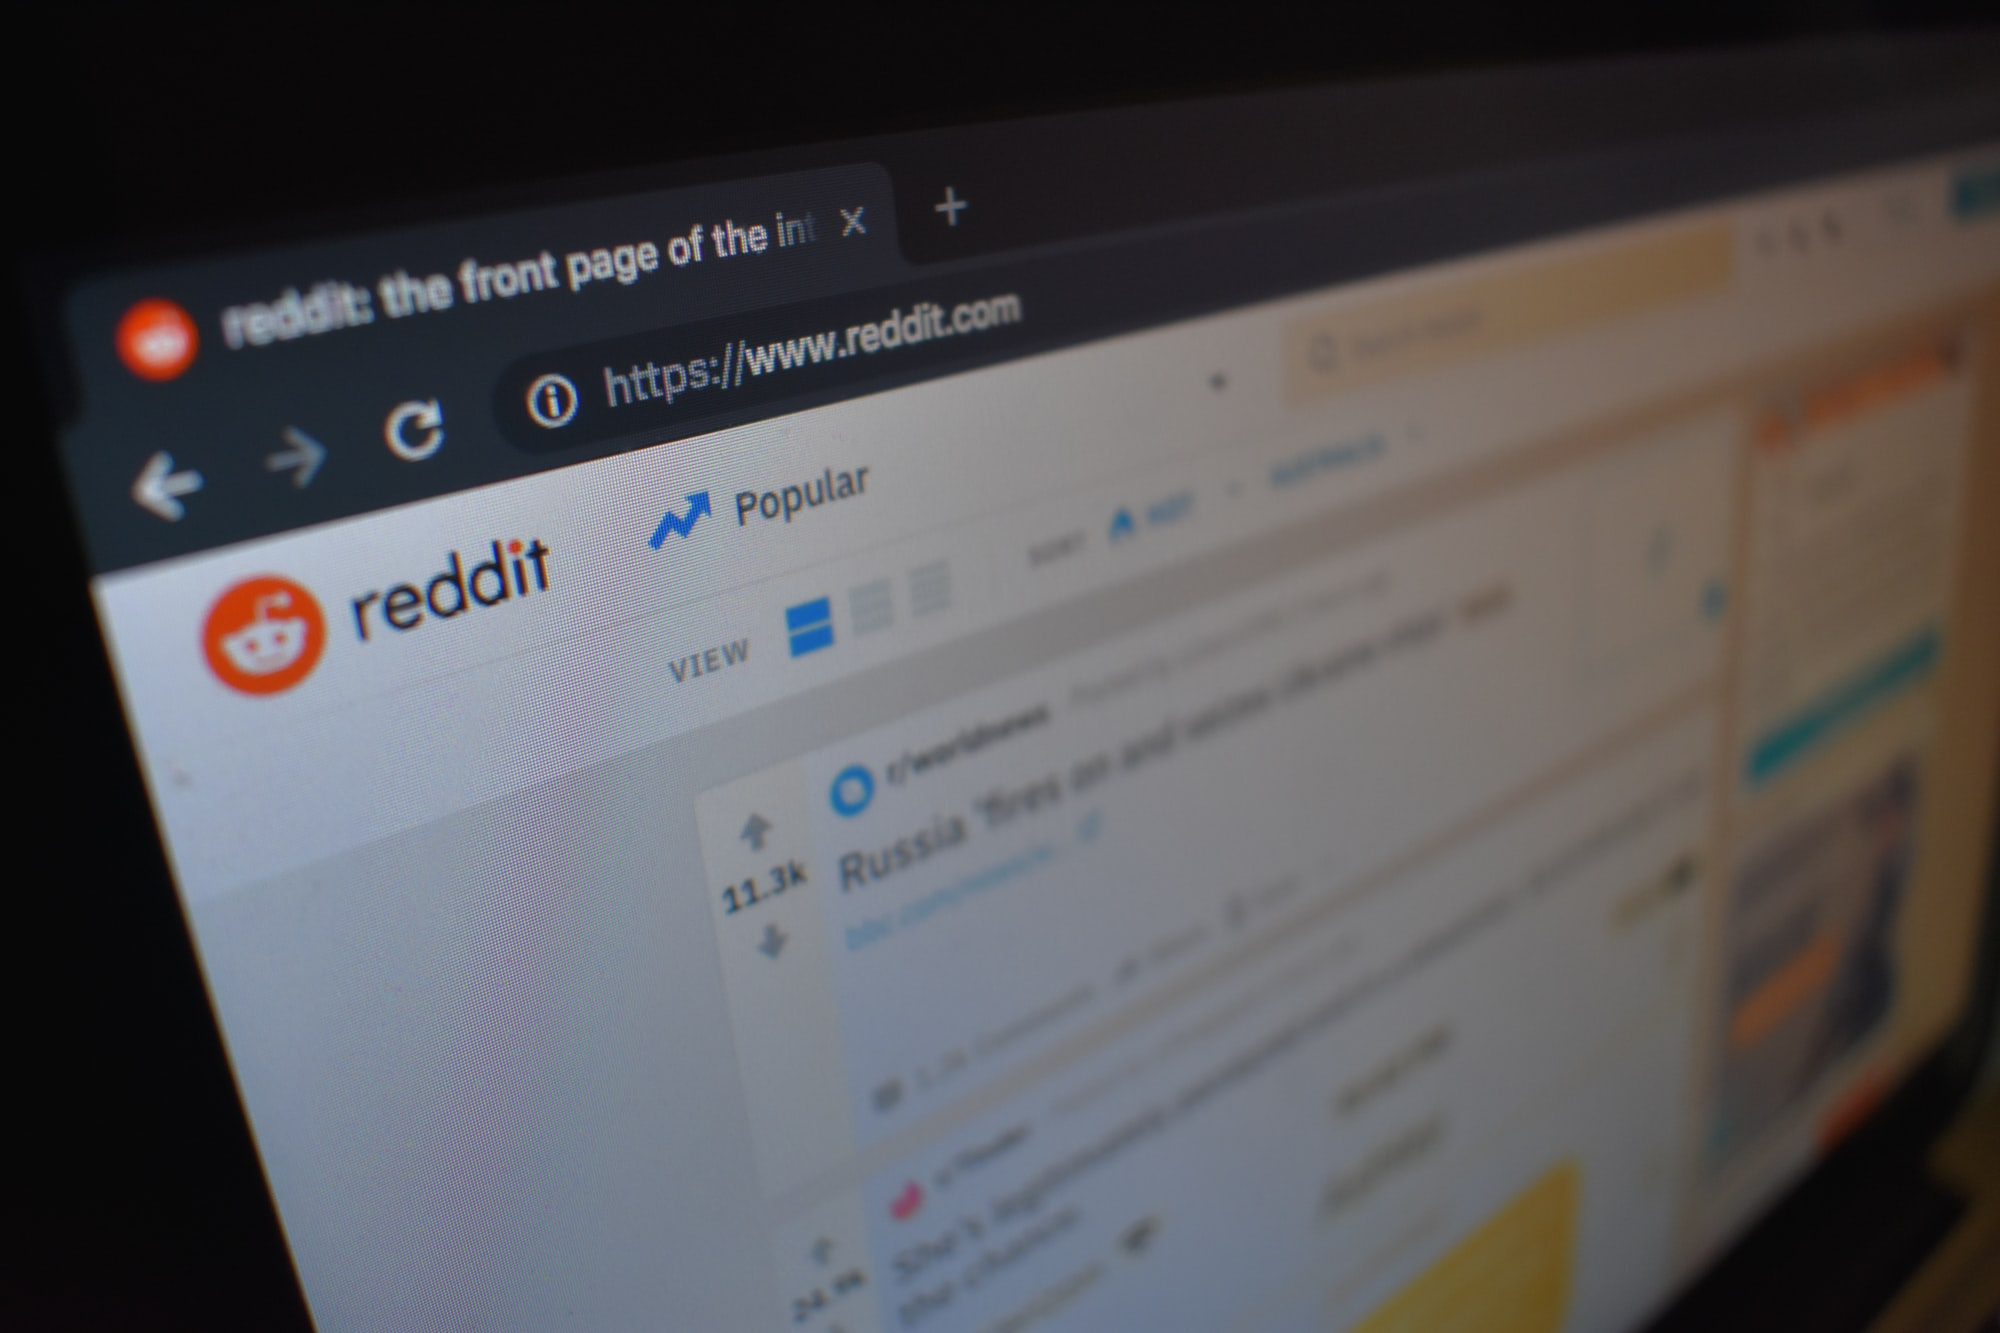 Reddit Launches New Feature to Initiate Smaller Group Chats in Subreddits